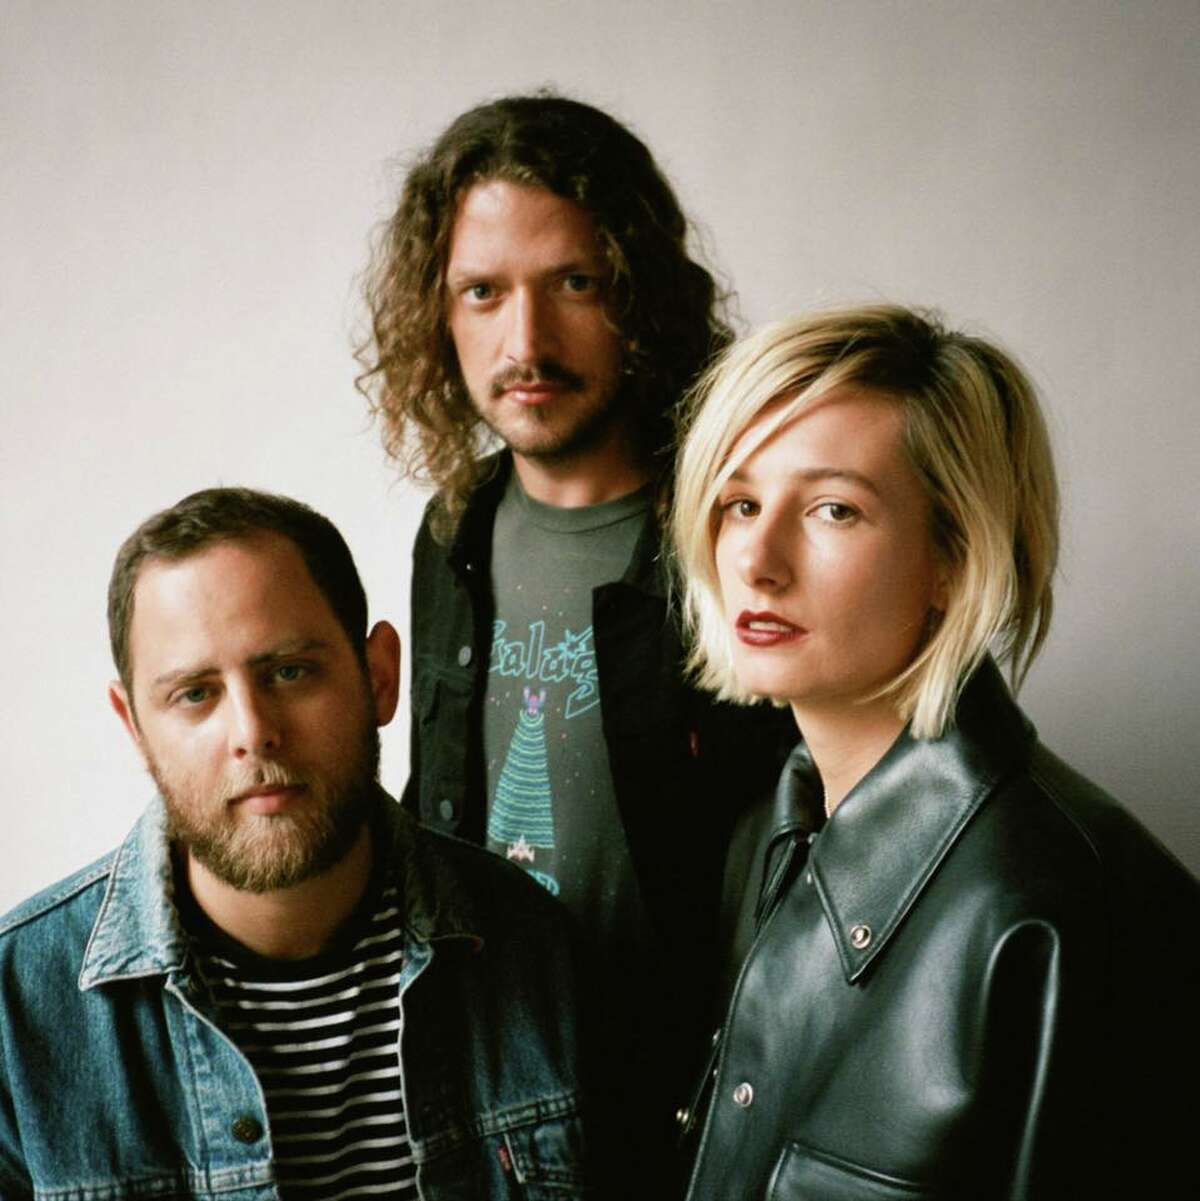 Boston-based band Slothrust will be the headliners at this year's PearlPalooza.(Getty)